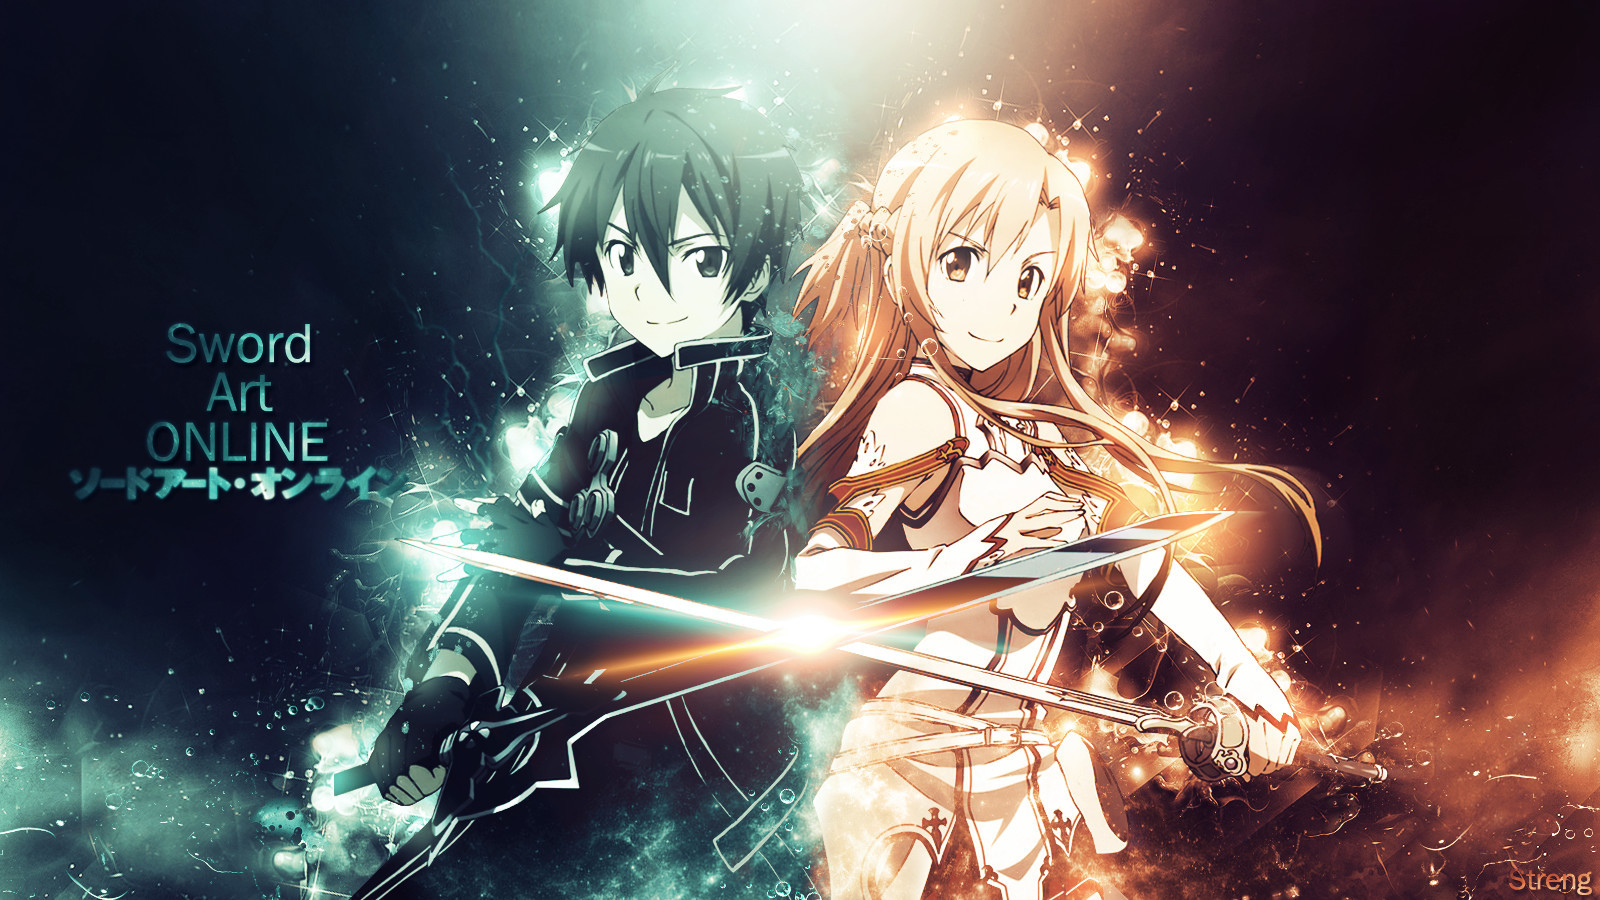 vitr0 images sword art online hd wallpaper and background photos